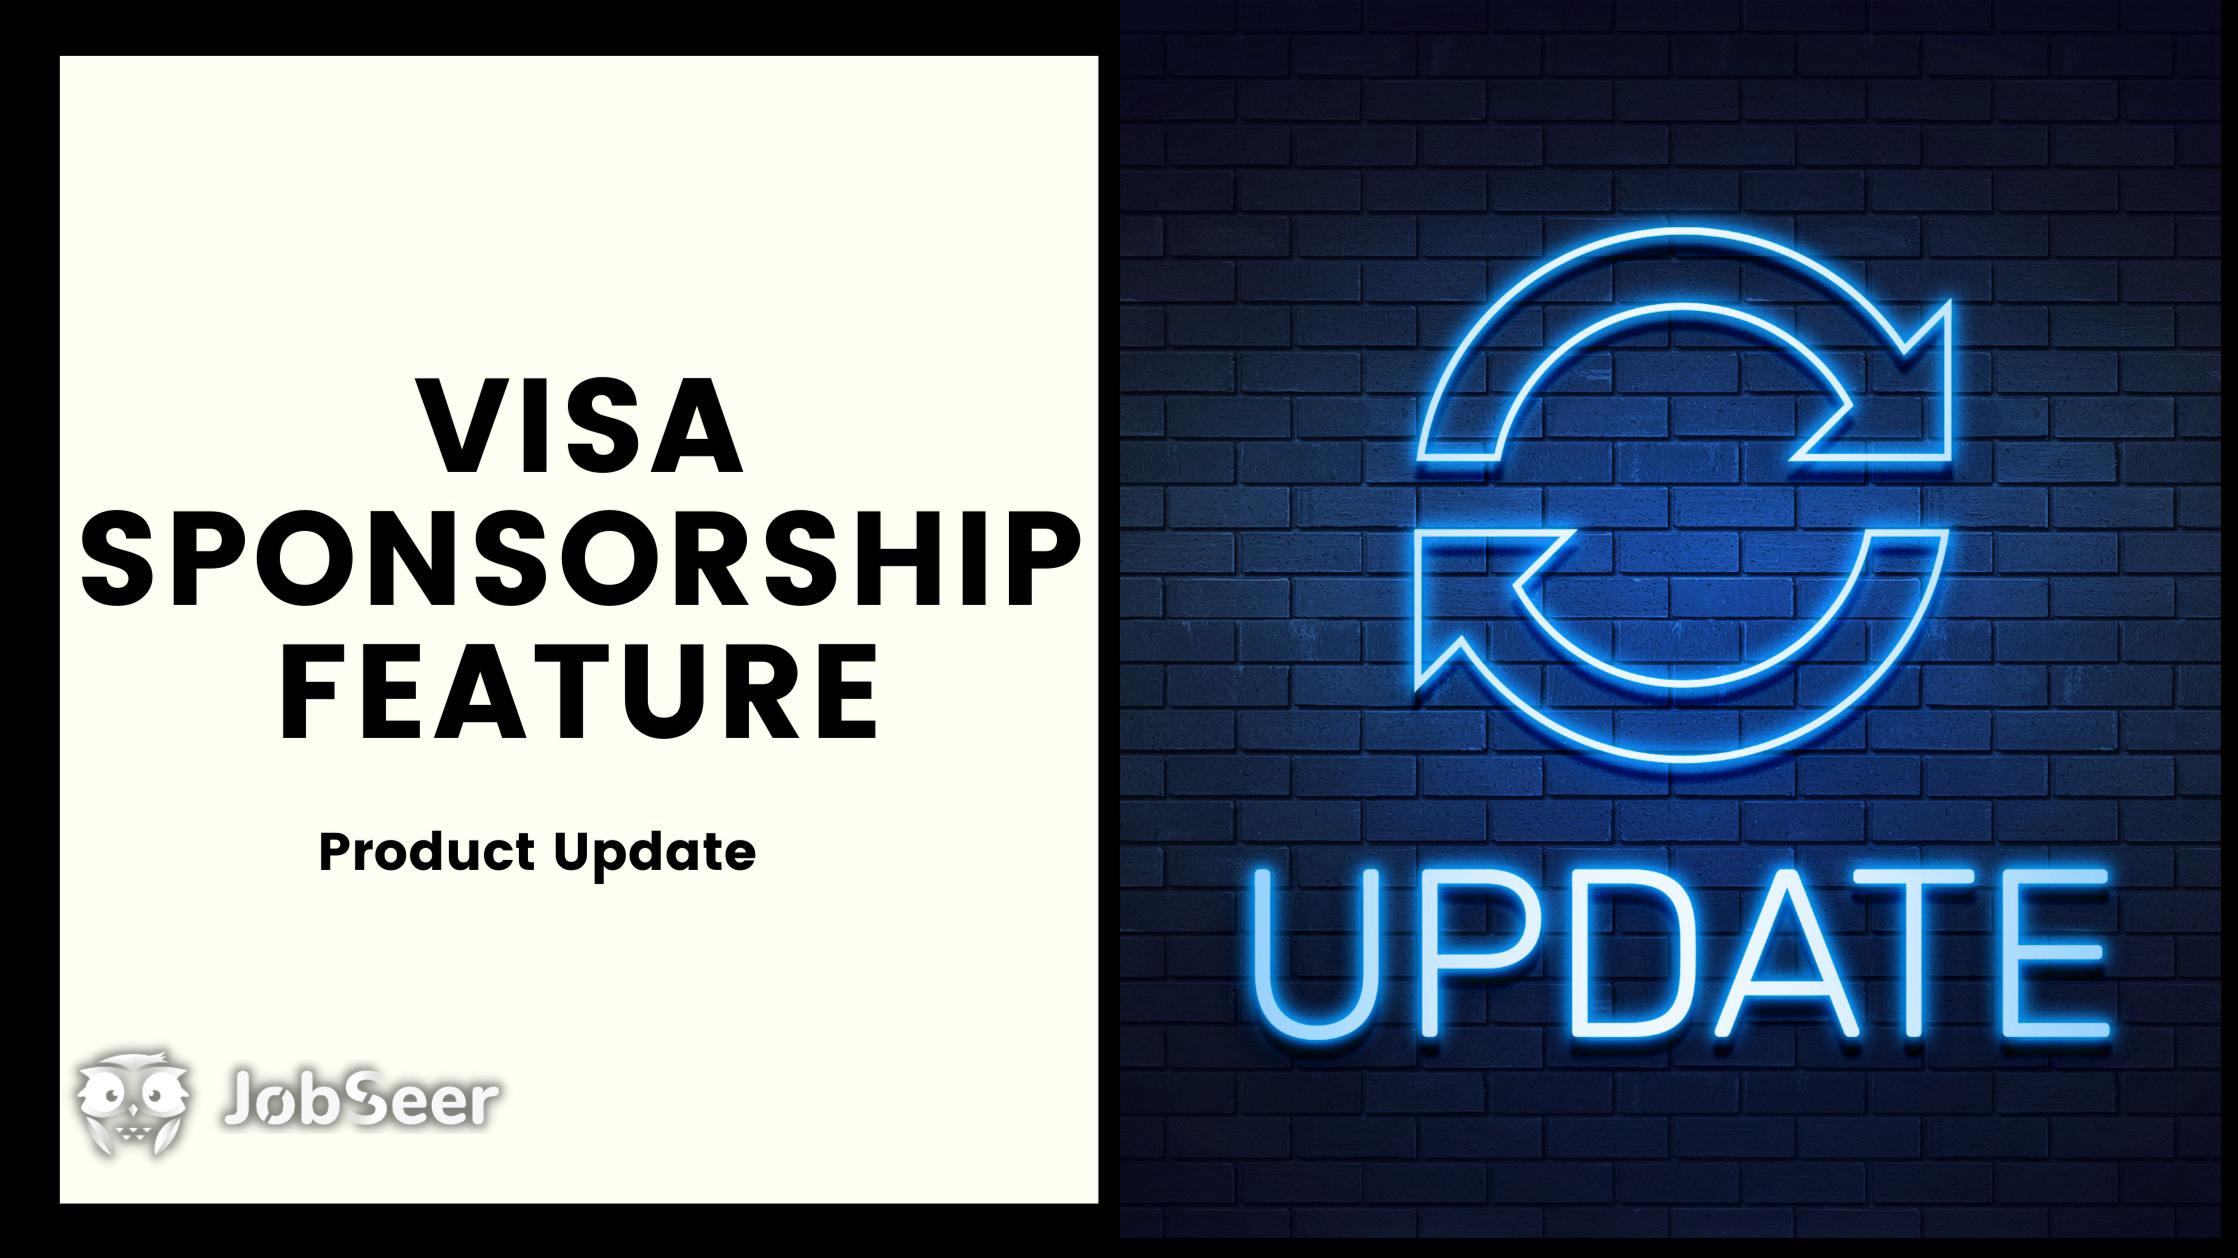 Press-Release%3A-JobSeer-Launches-Visa-Sponsorship-Feature-To-Bridge-More-Diverse-Candidates-To-Employers